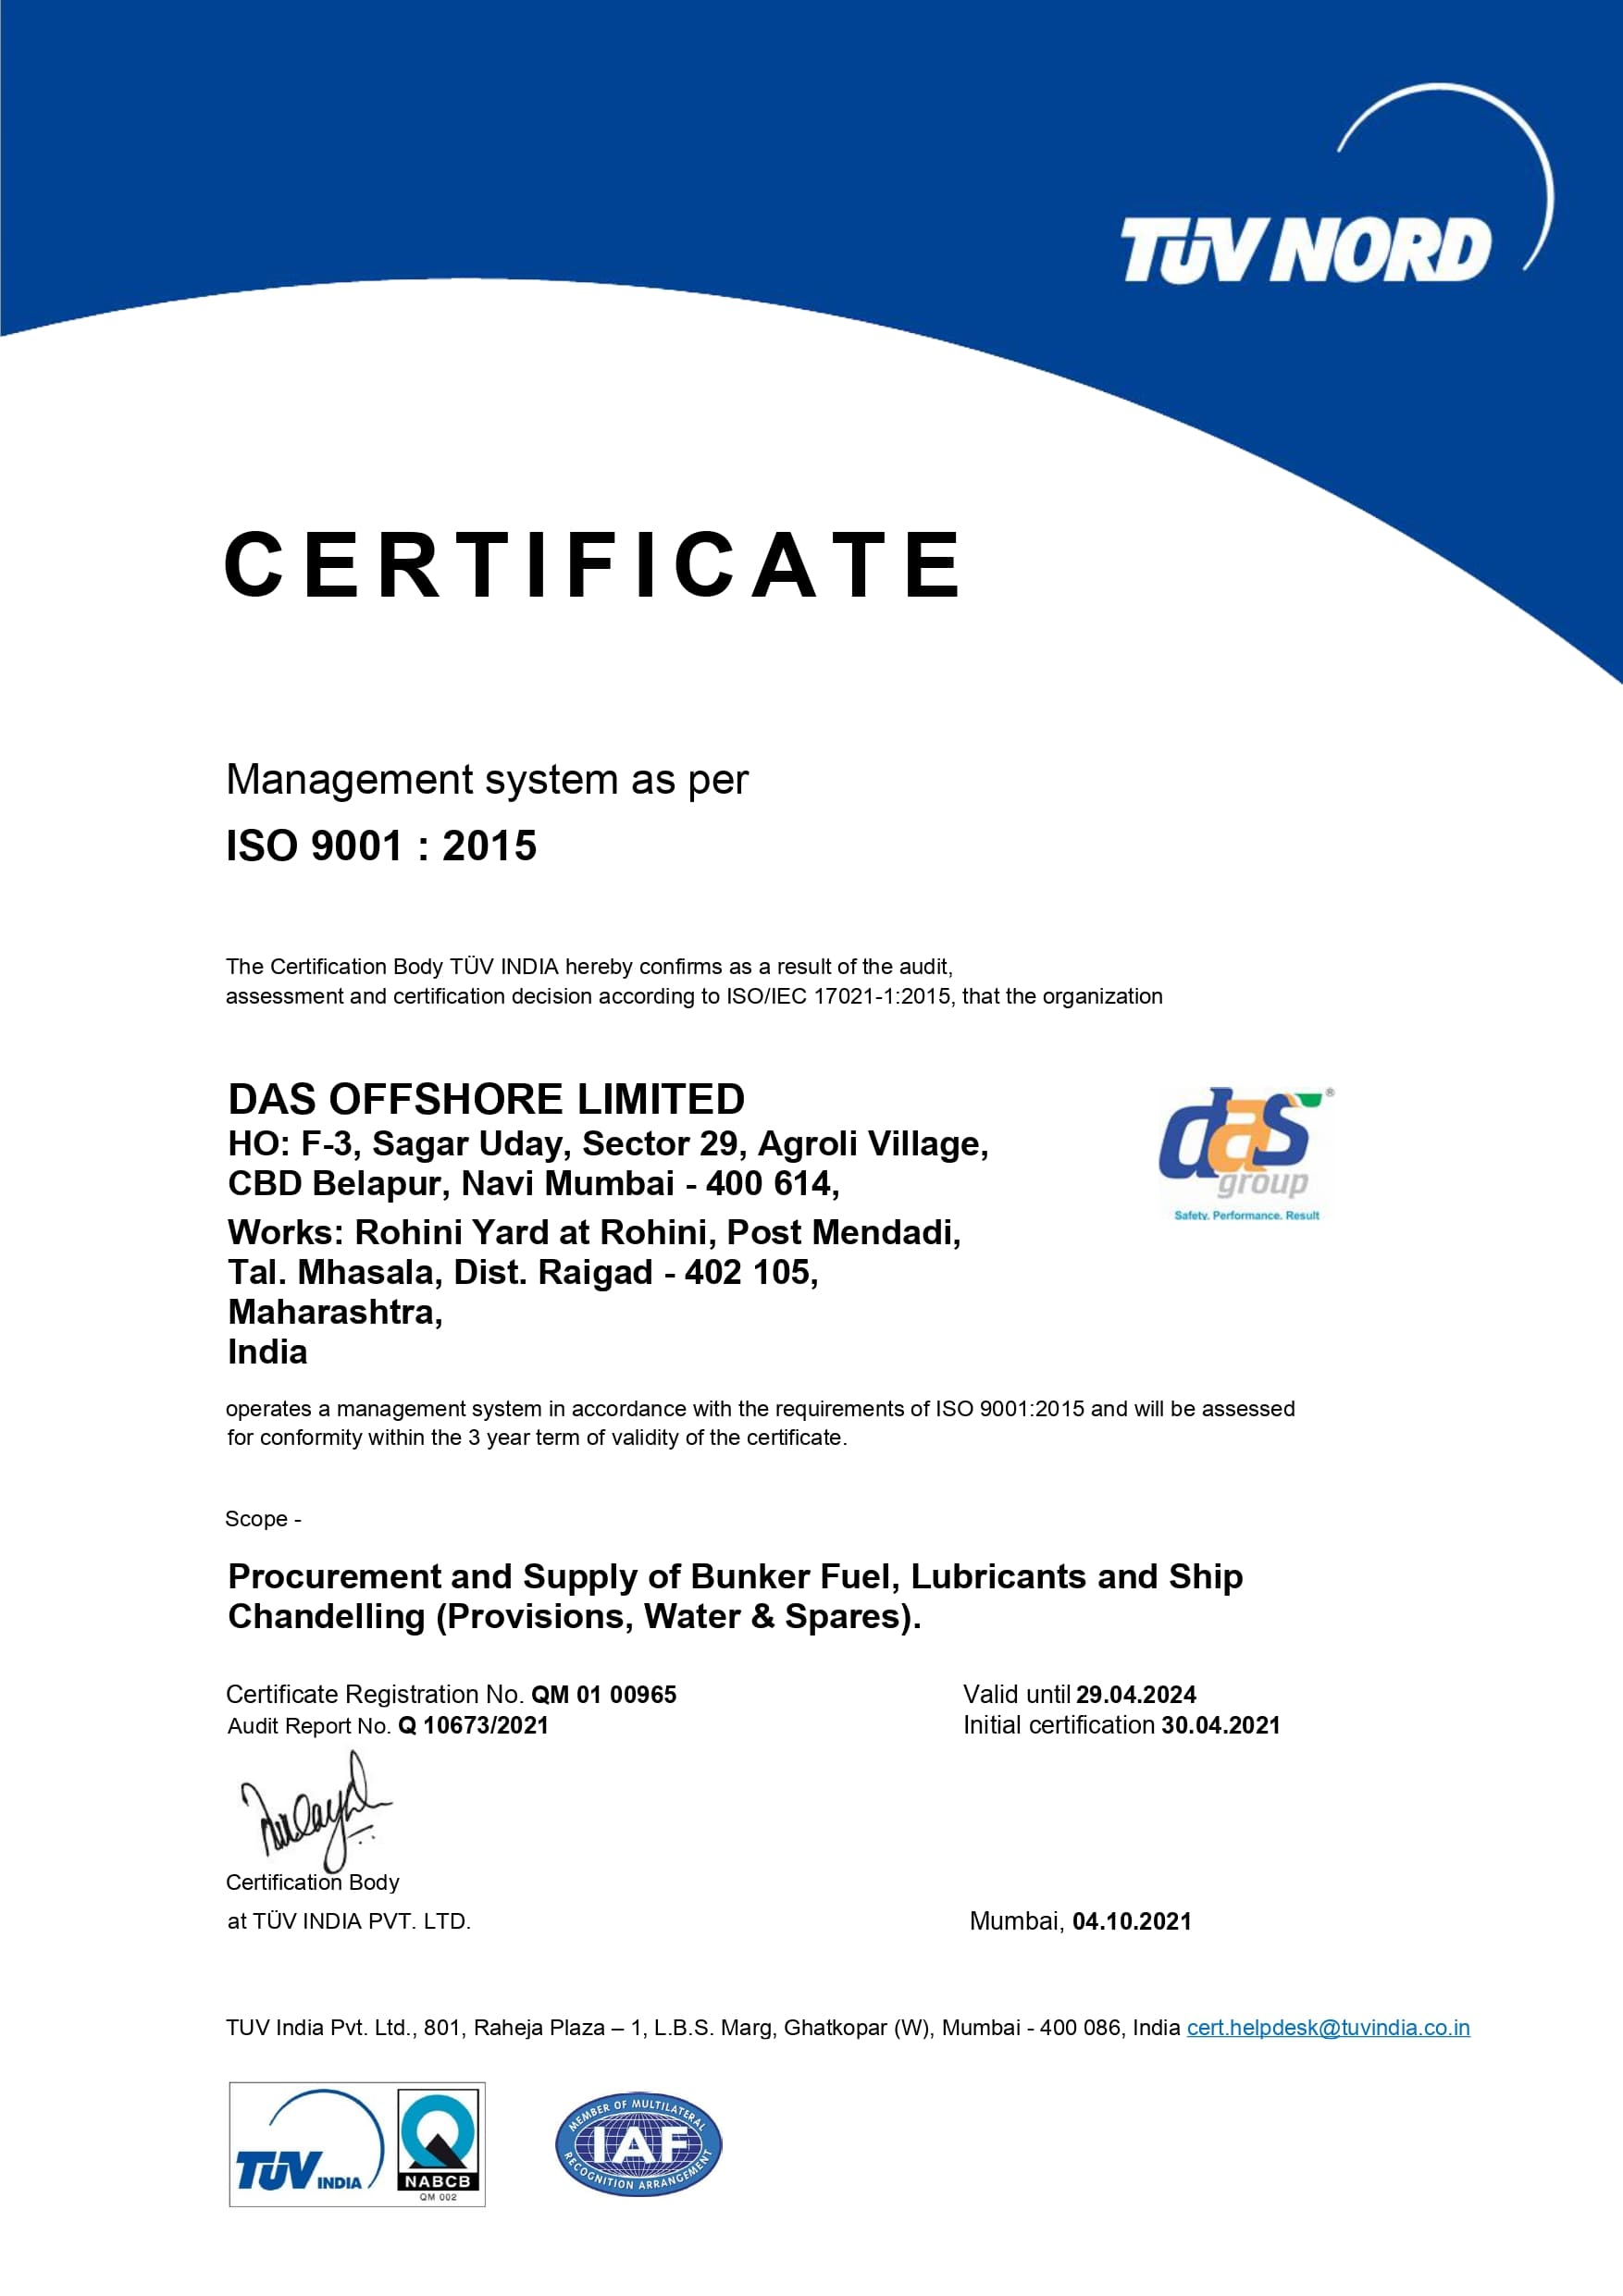 Management system as per ISO 14001 : 2015(Procurement and Supply of Bunker fuel, Lubricants and ship chandelling)